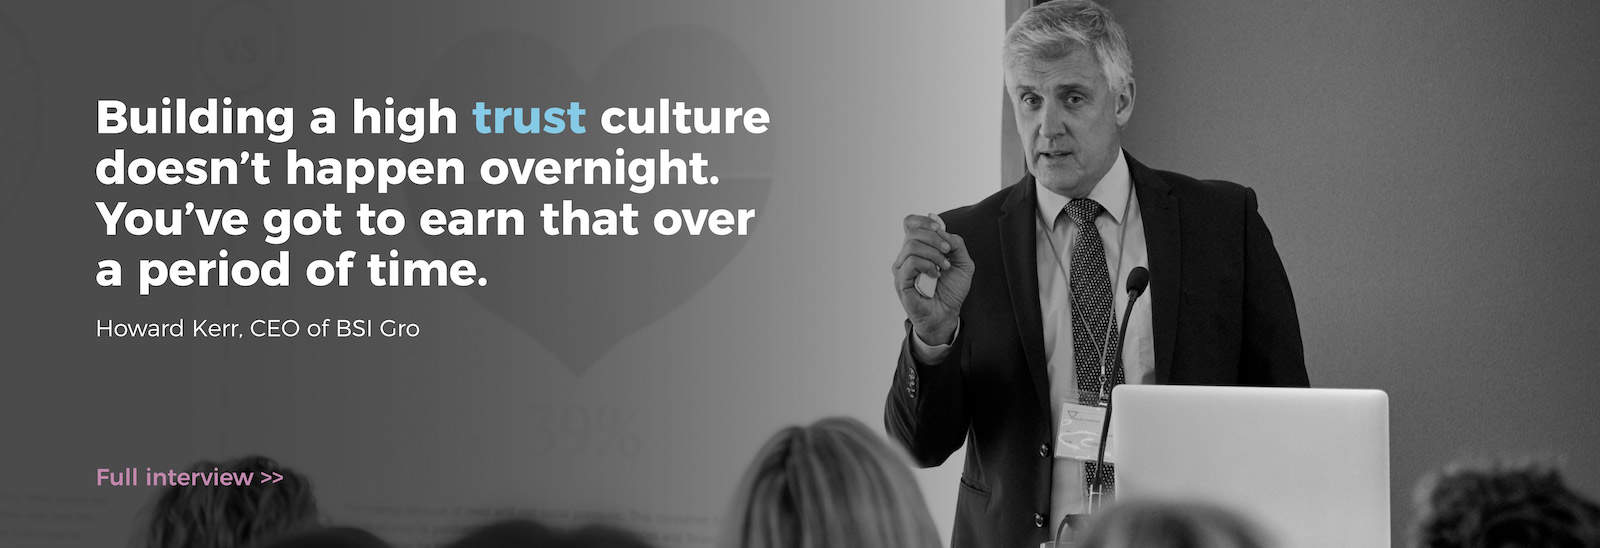 Building a high trust culture doesn't happen overnight. You've got to earn that over a period of time. Howard Kerr, CEO of BSI Group